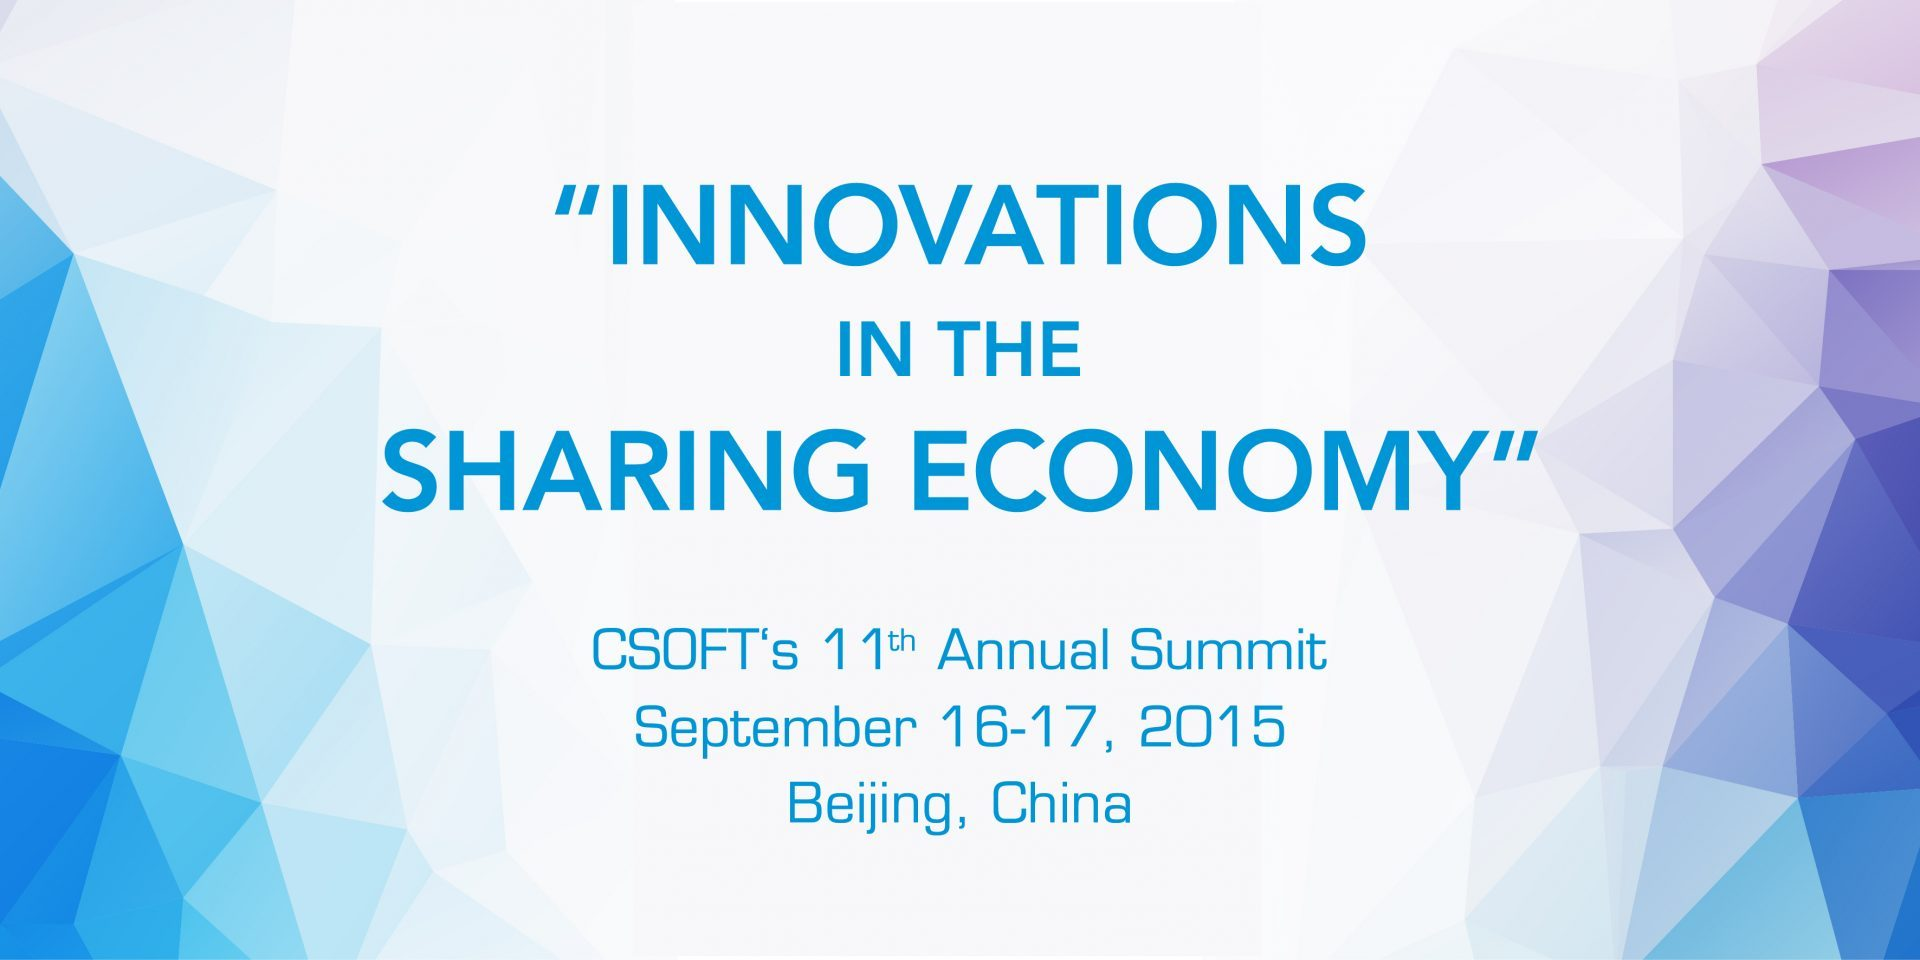 CSOFT Summit to Discuss Technology and Innovation in the Sharing Economy